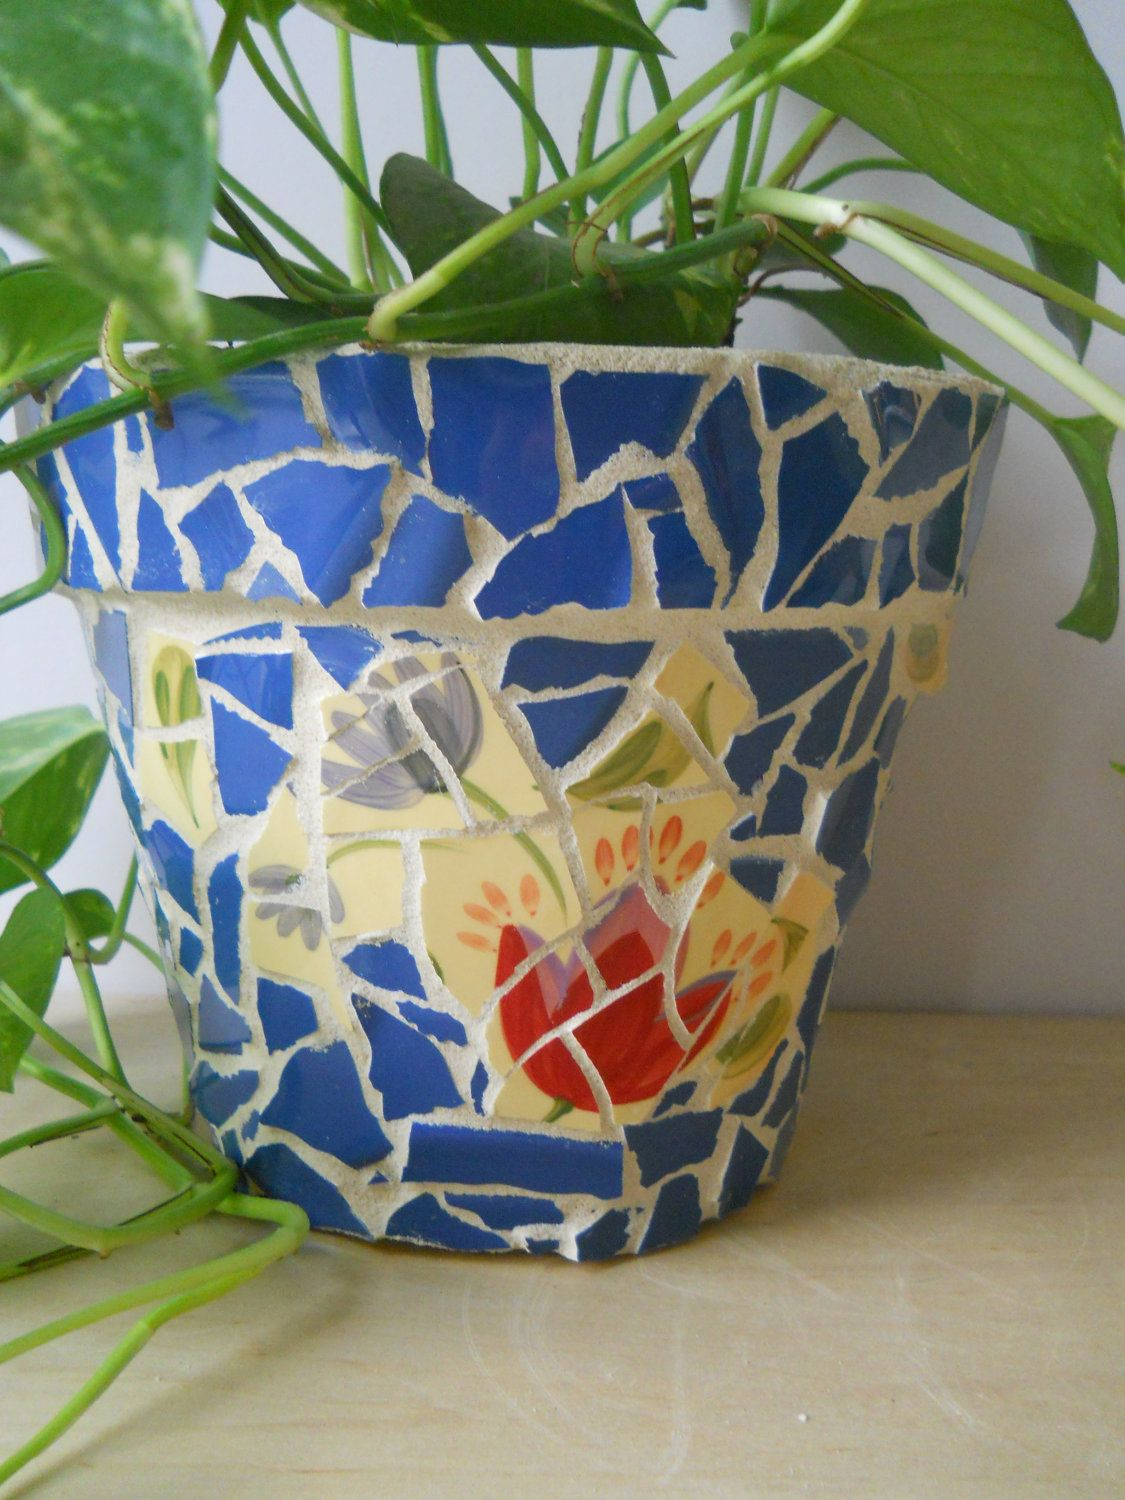 exterior charming mosaic design ideas applied for small potted flowers that usually could be placed - Mosaic Design Ideas